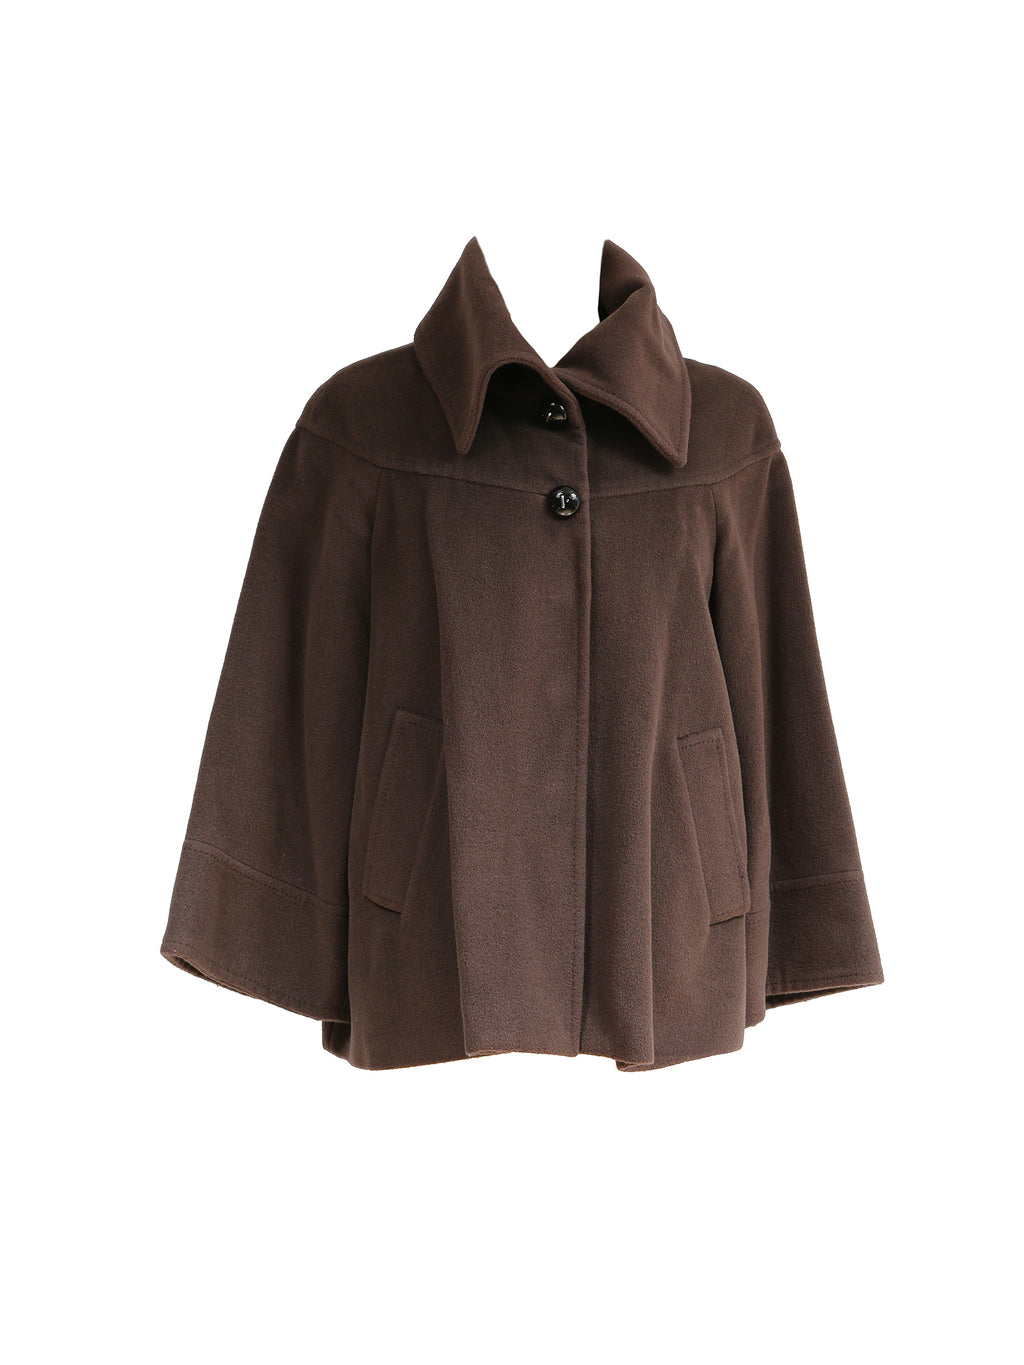 Carolina Herrera Wool and Angora Brown Coat Size S